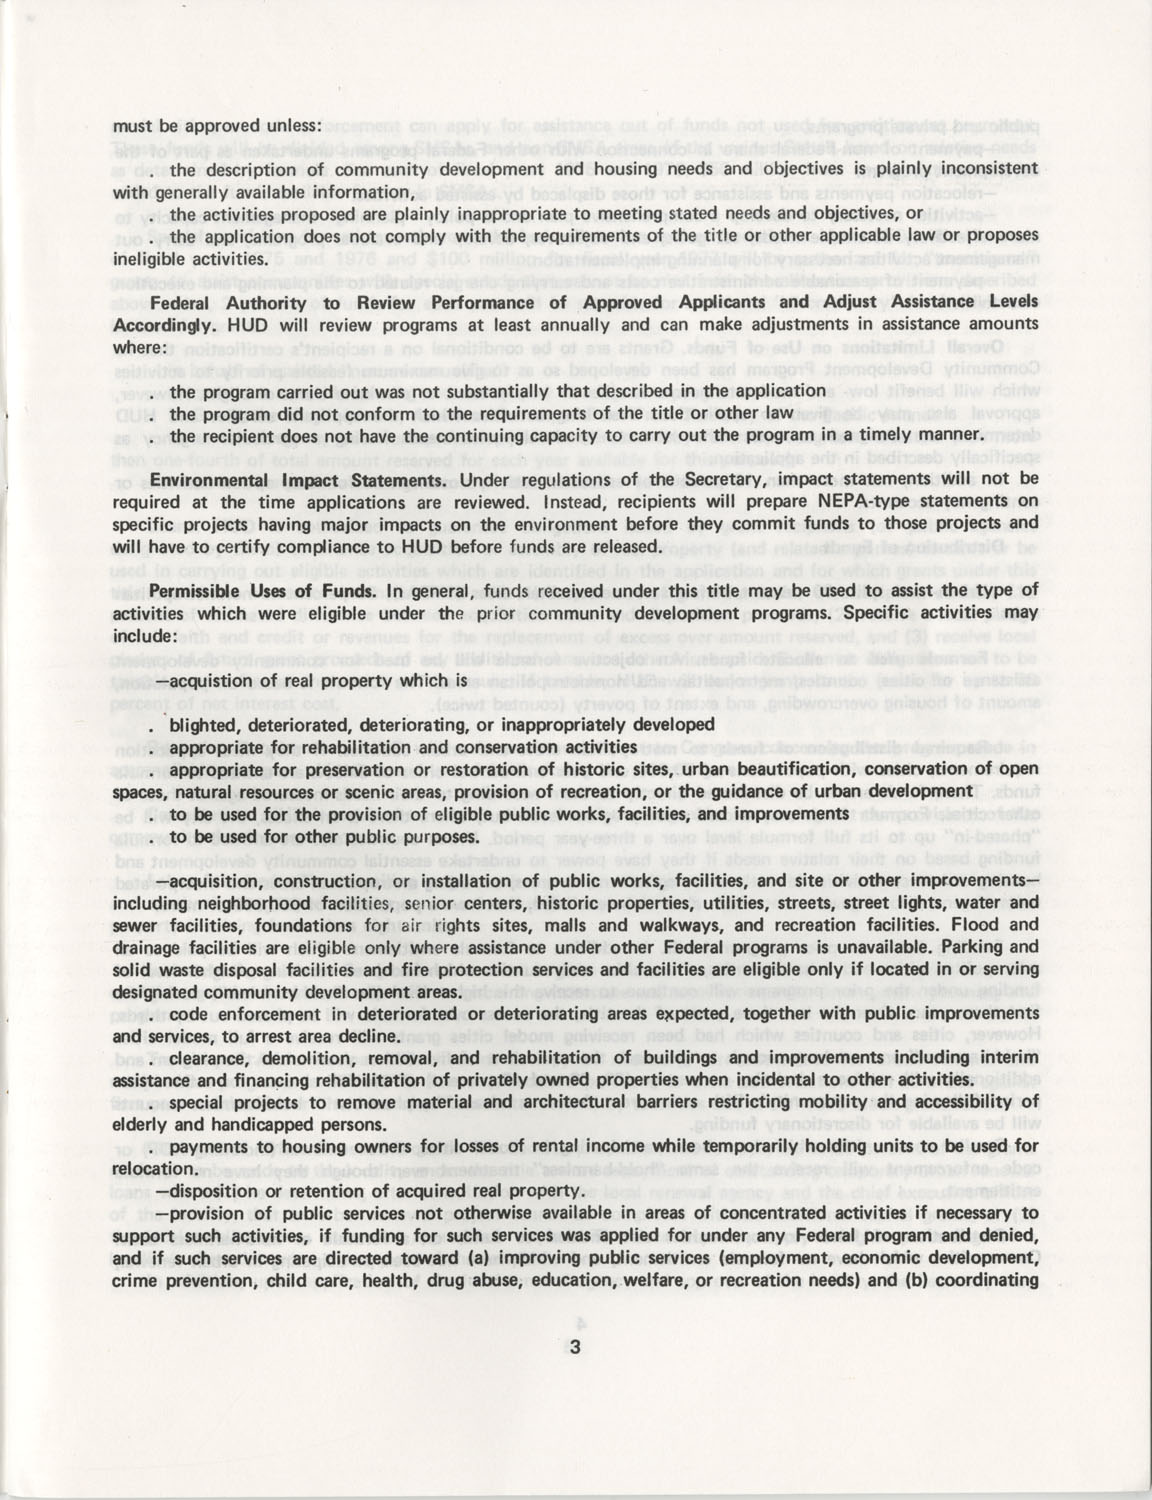 Summary of the Housing and Community Development Act of 1974, Page 3